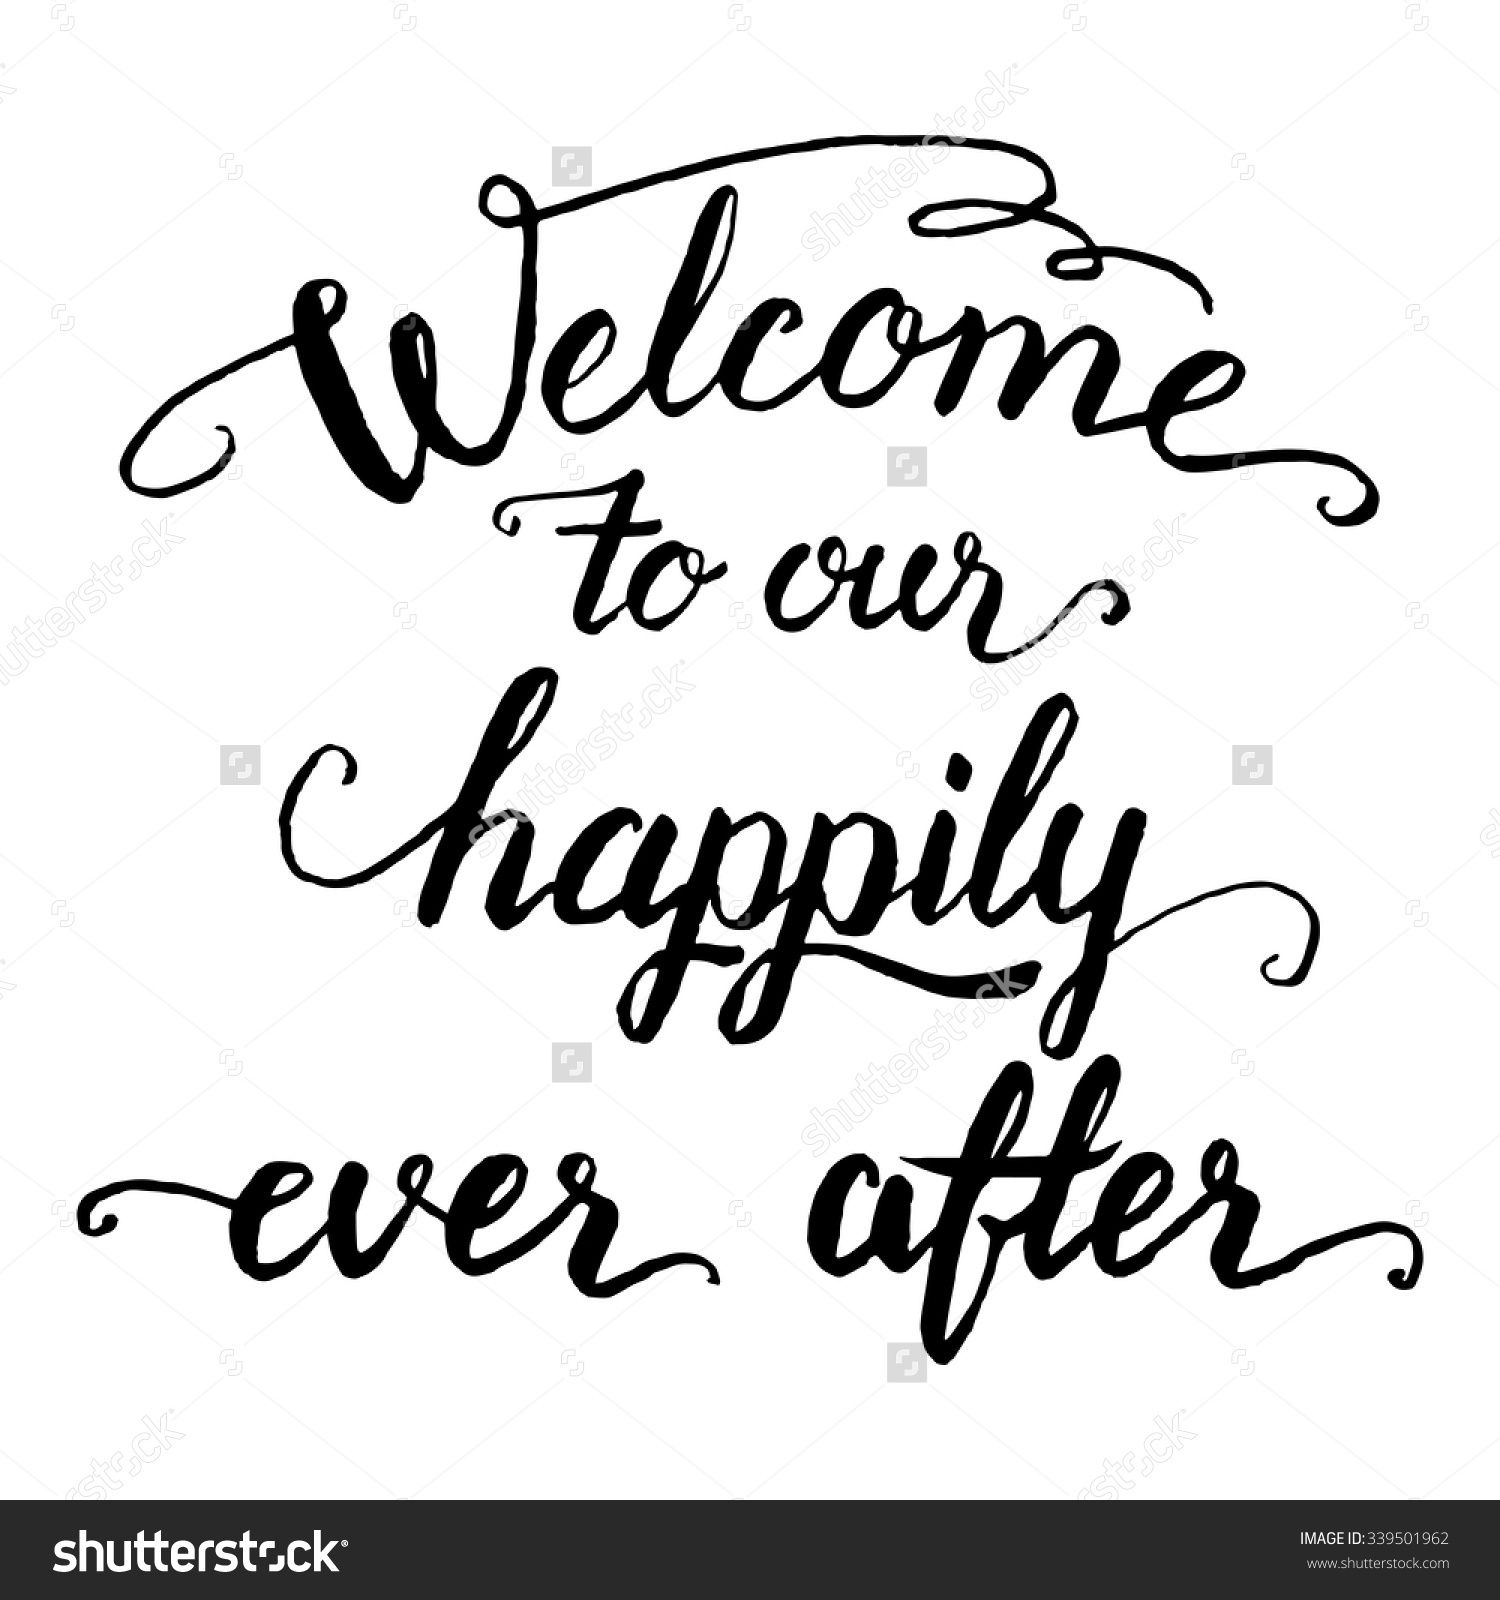 Download happily ever after - Google Search | Ever after